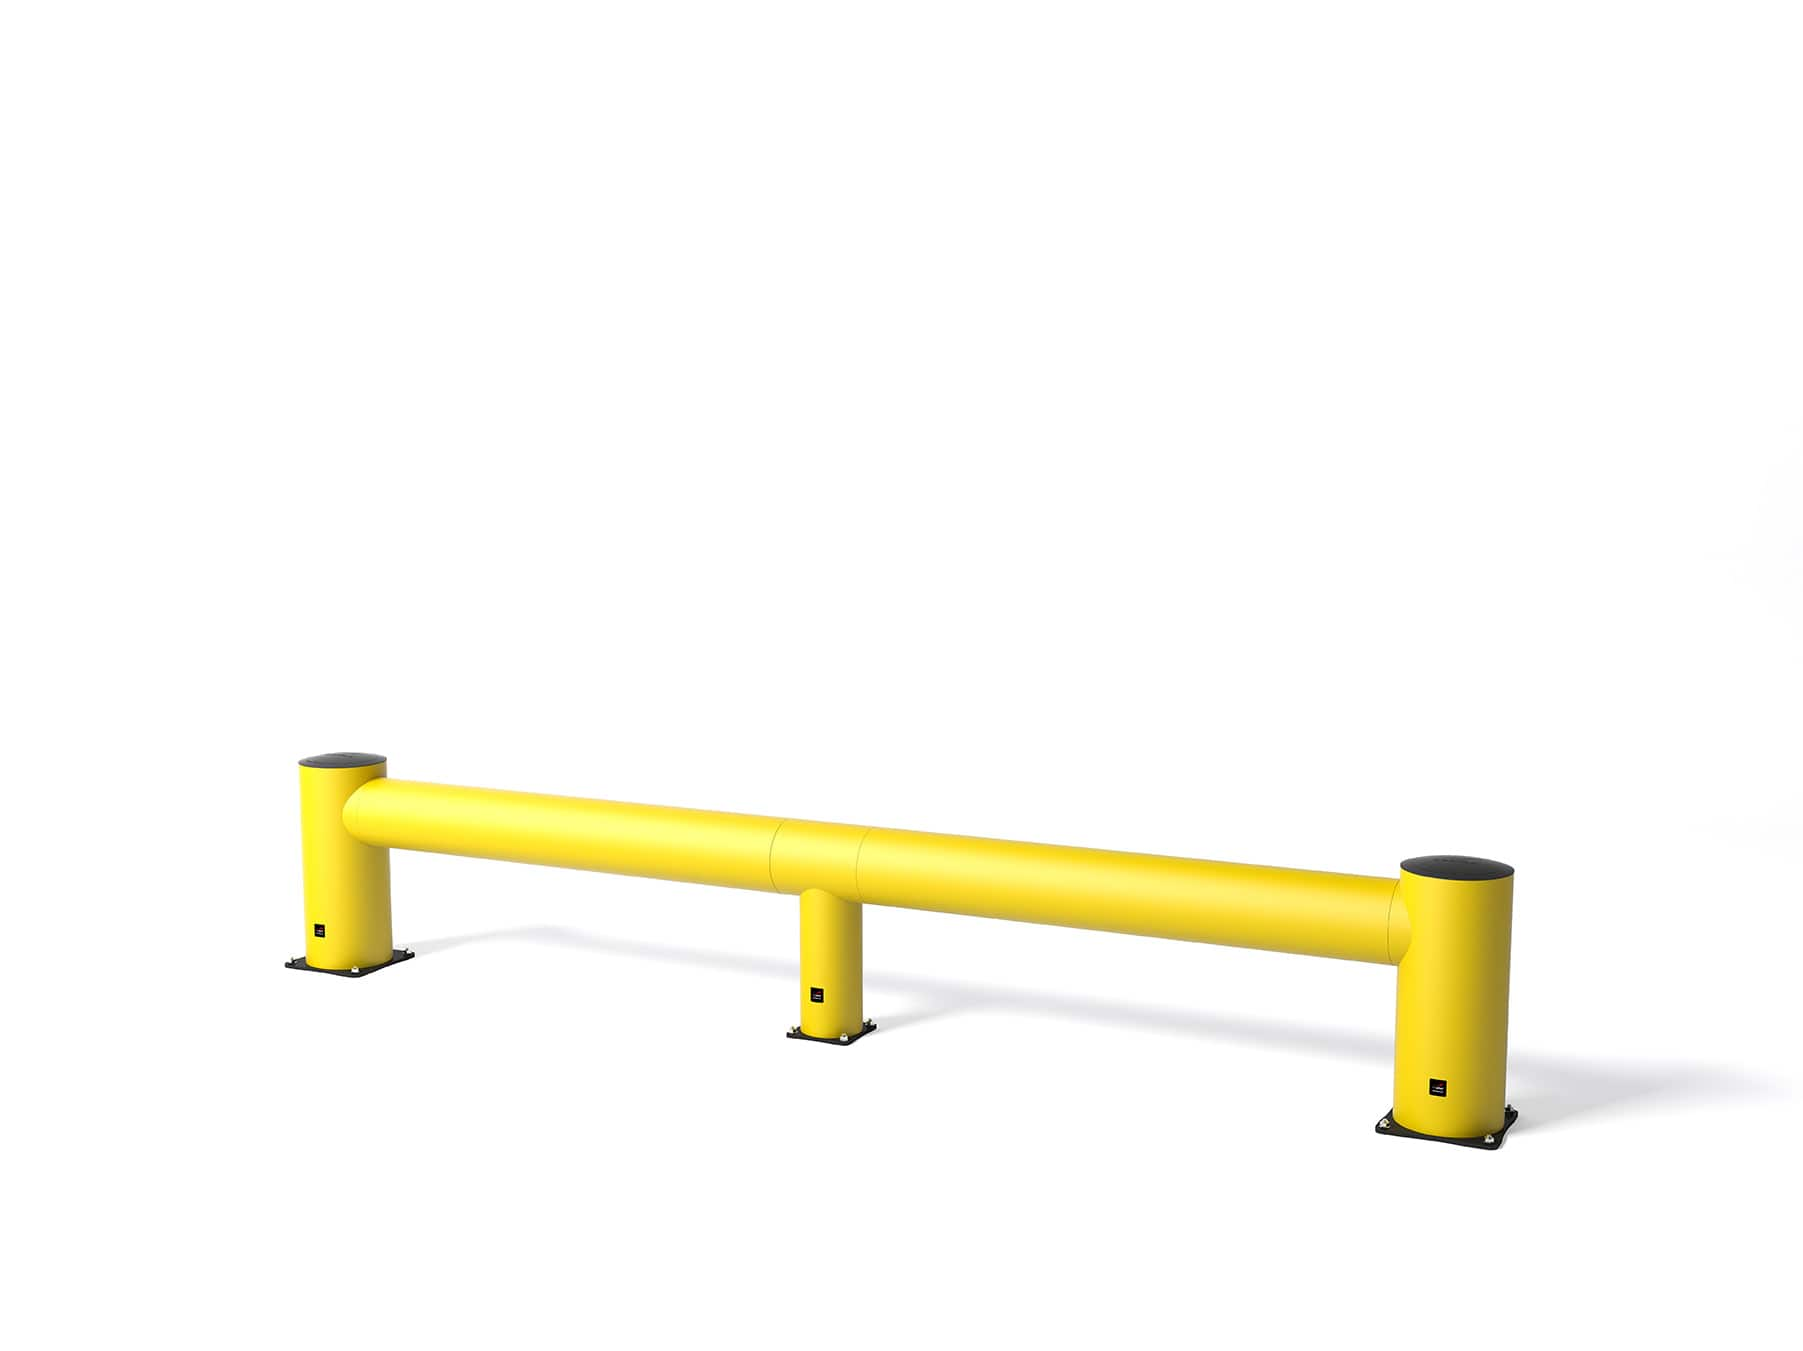 flex-impact-traffic-safety-barrier-tb_550-min.jpg